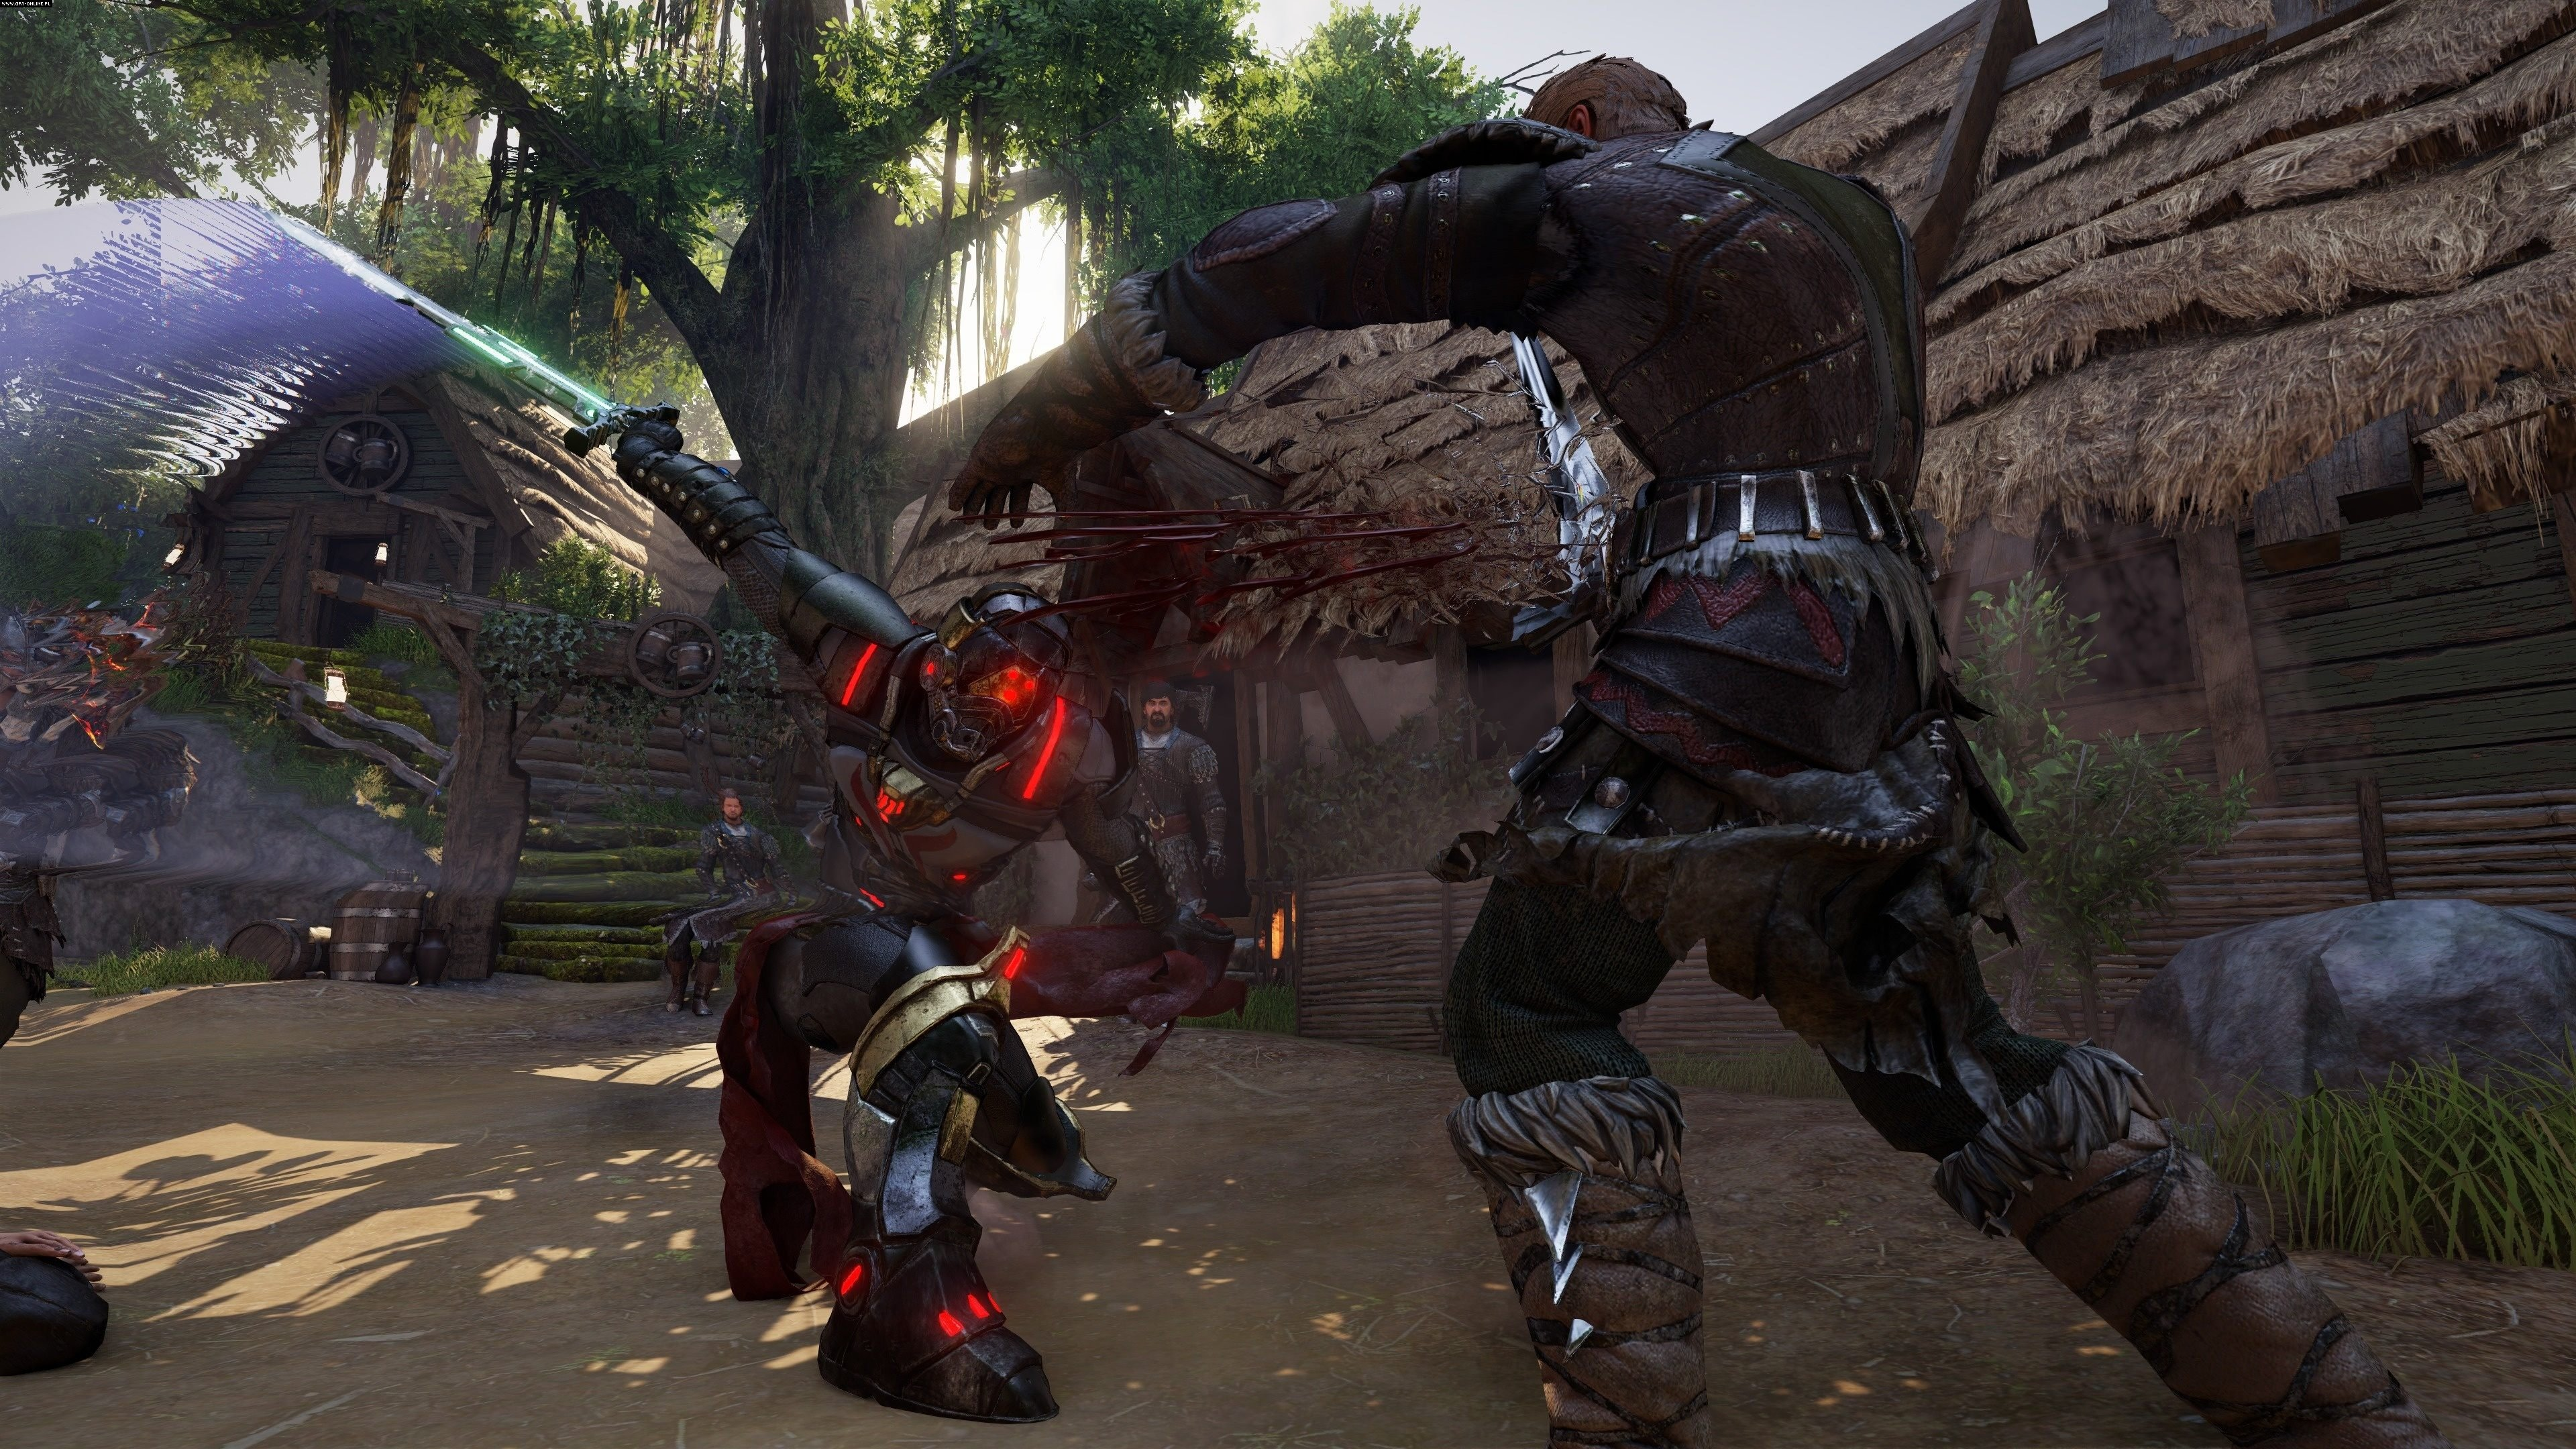 Elex PC, PS4, XONE Gry Screen 21/109, Piranha Bytes, THQ Nordic / Nordic Games